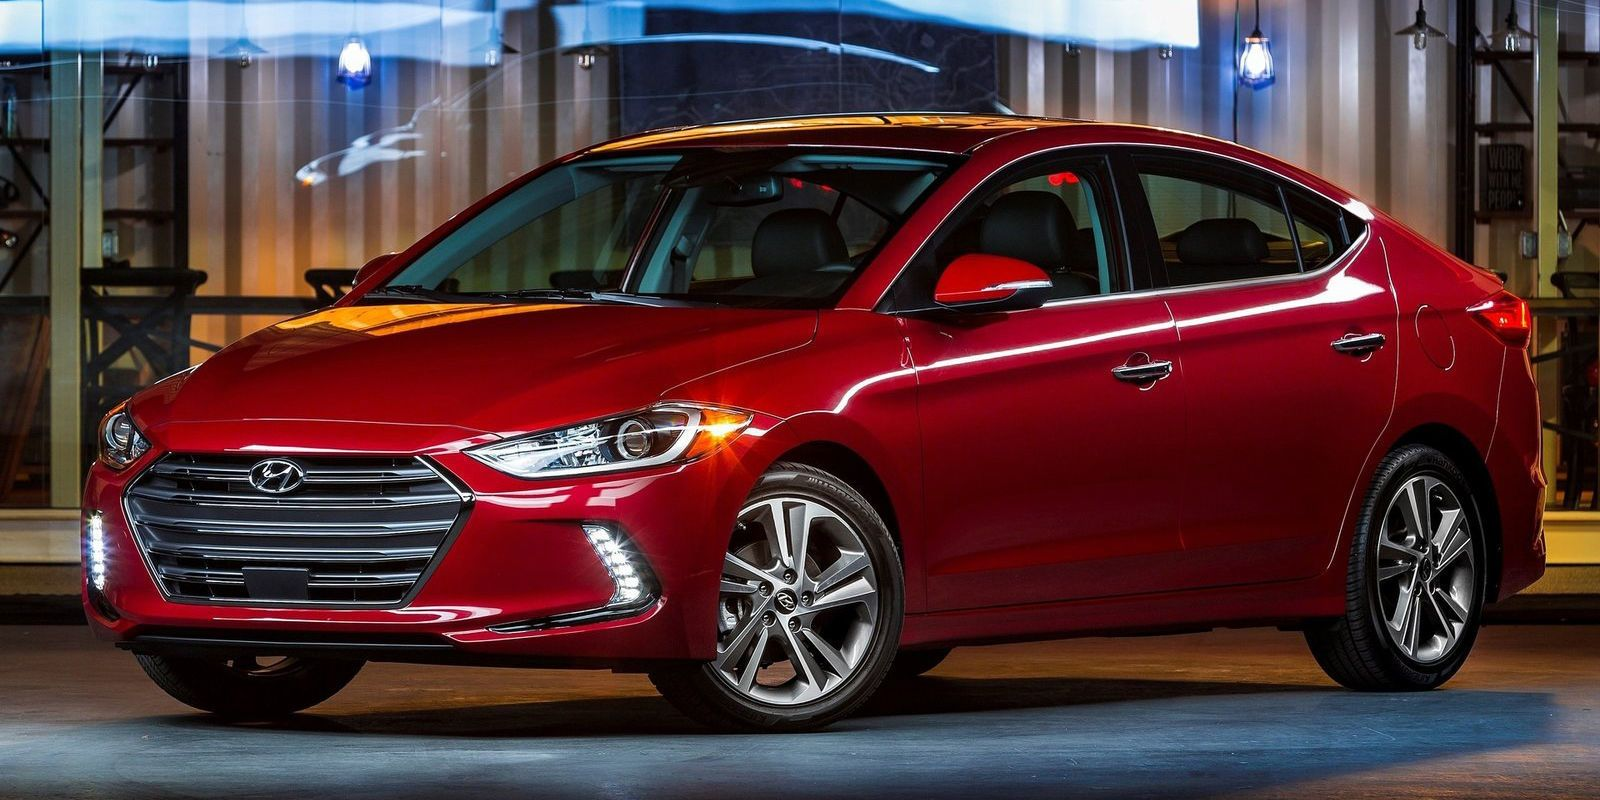 The Hyundai Elantra Sport Looks Like It Will Be a Real